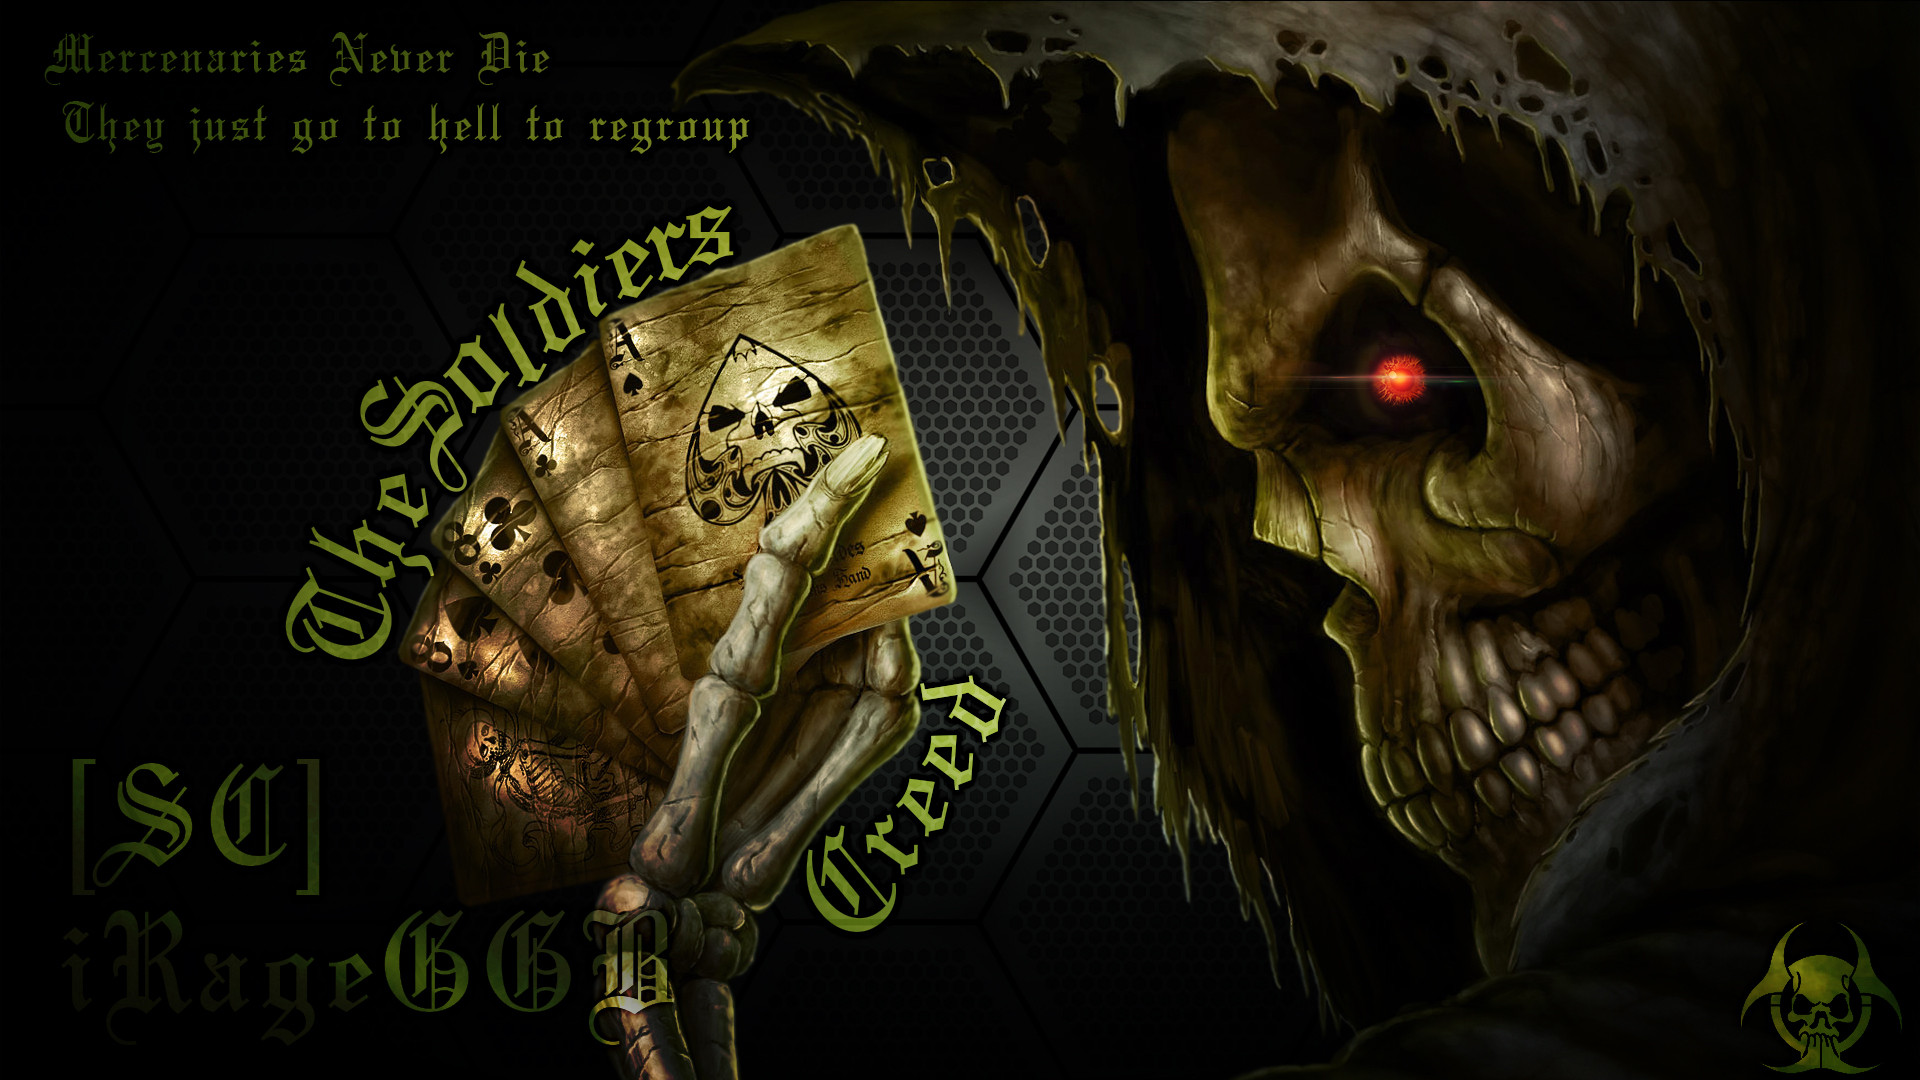 Free Download Grim Reaper Game Over Wallpaper Grim Reaper Game